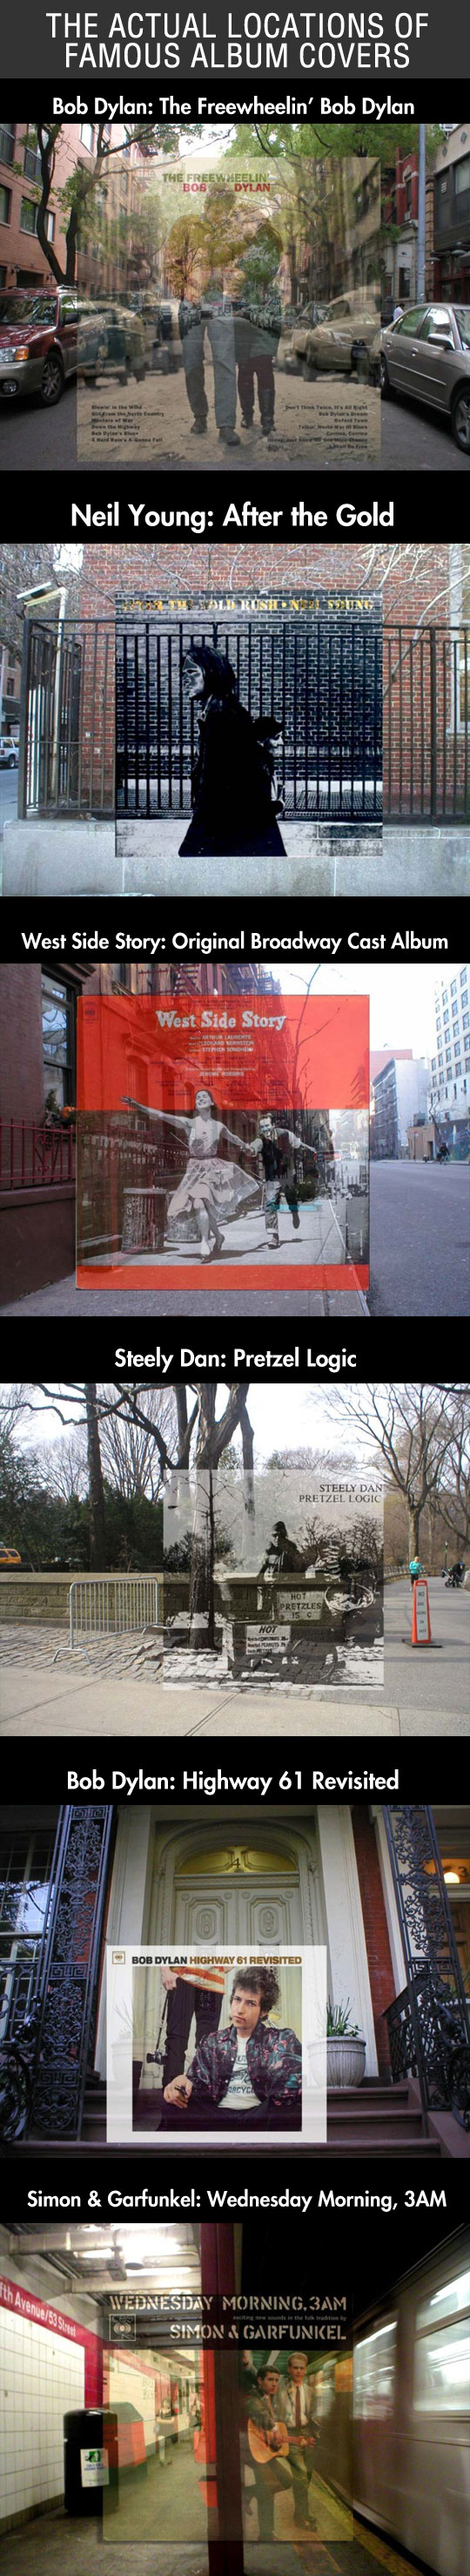 cool-album-covers-real-location-Bob-Dylan